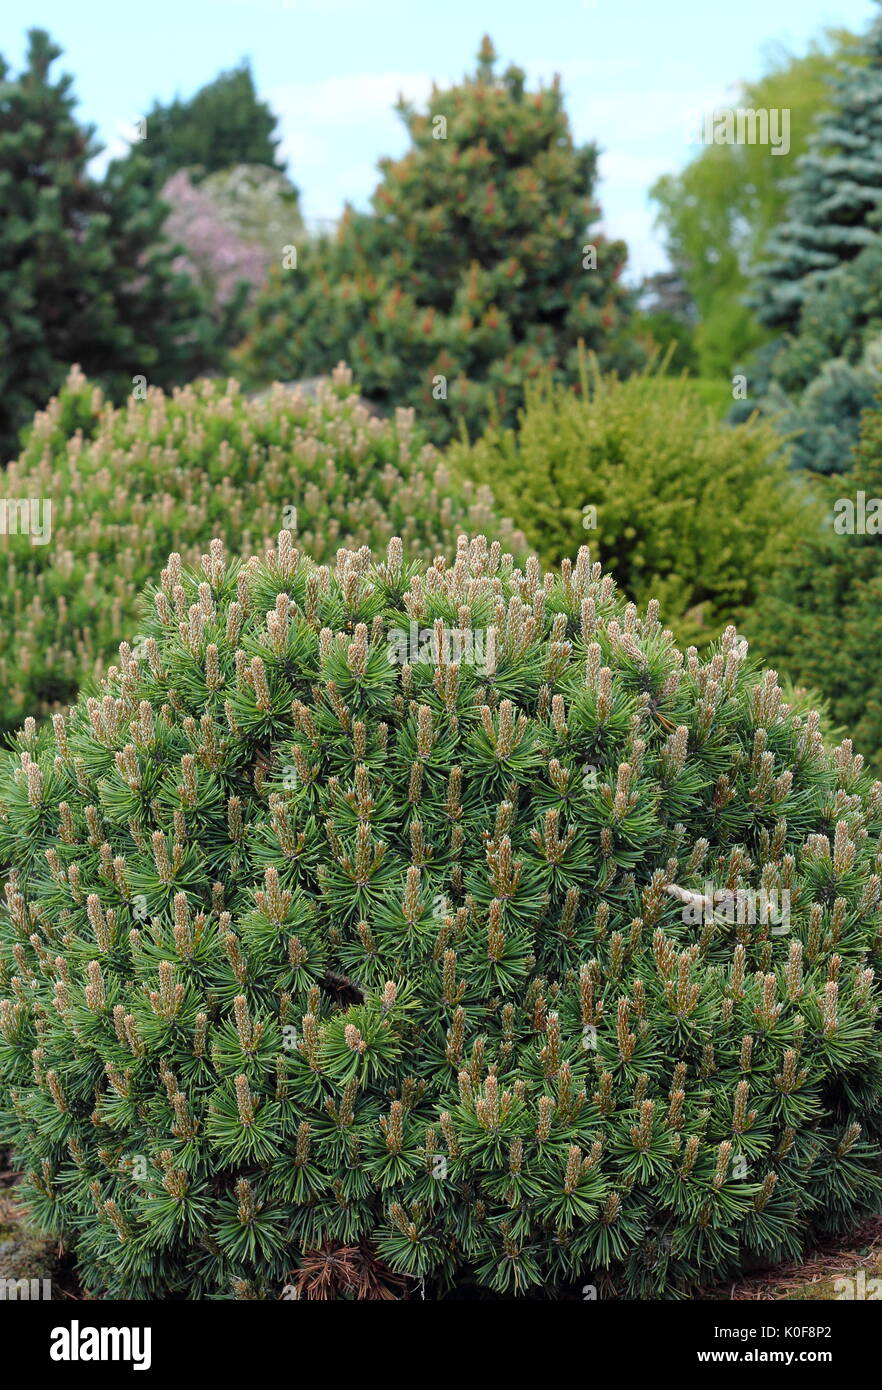 Evergreen ornamental bed featuring varieties of coniferous trees and shrubs (Abies and Pinus) lend attractive year round colour to a UK garden - Stock Image